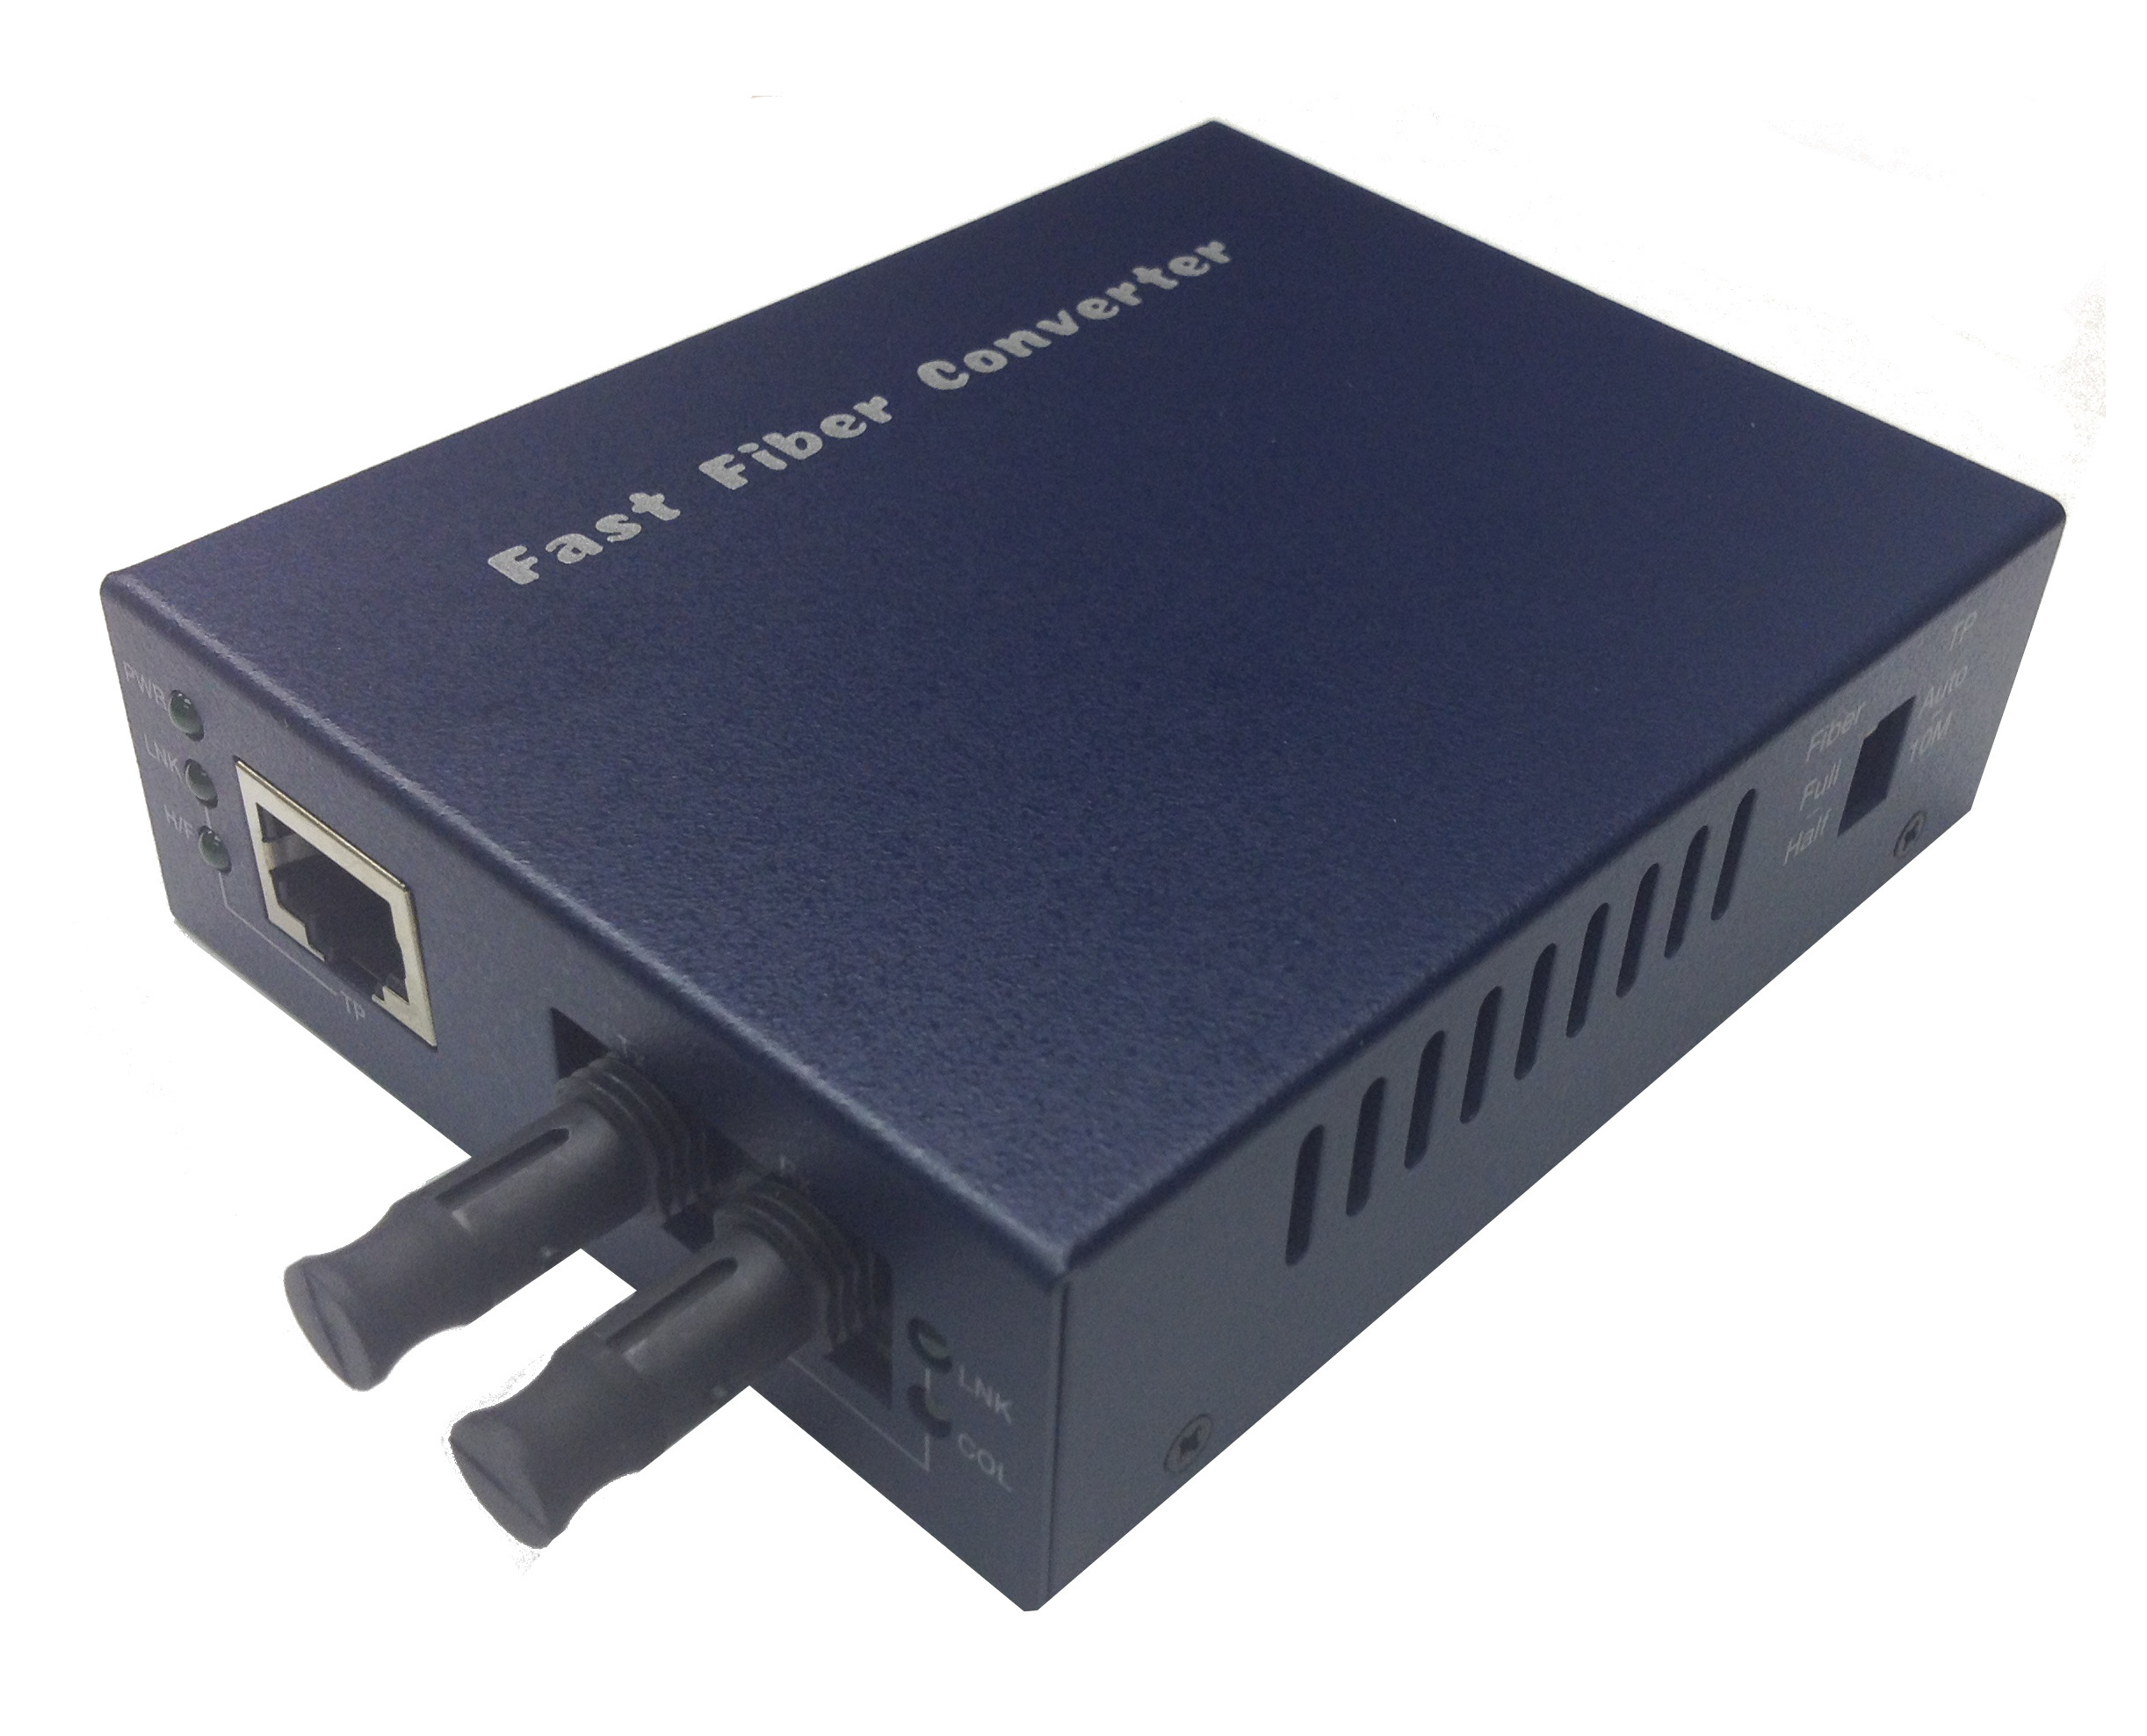 251000 - Fast Ethernet Media Converter - Multimode ST